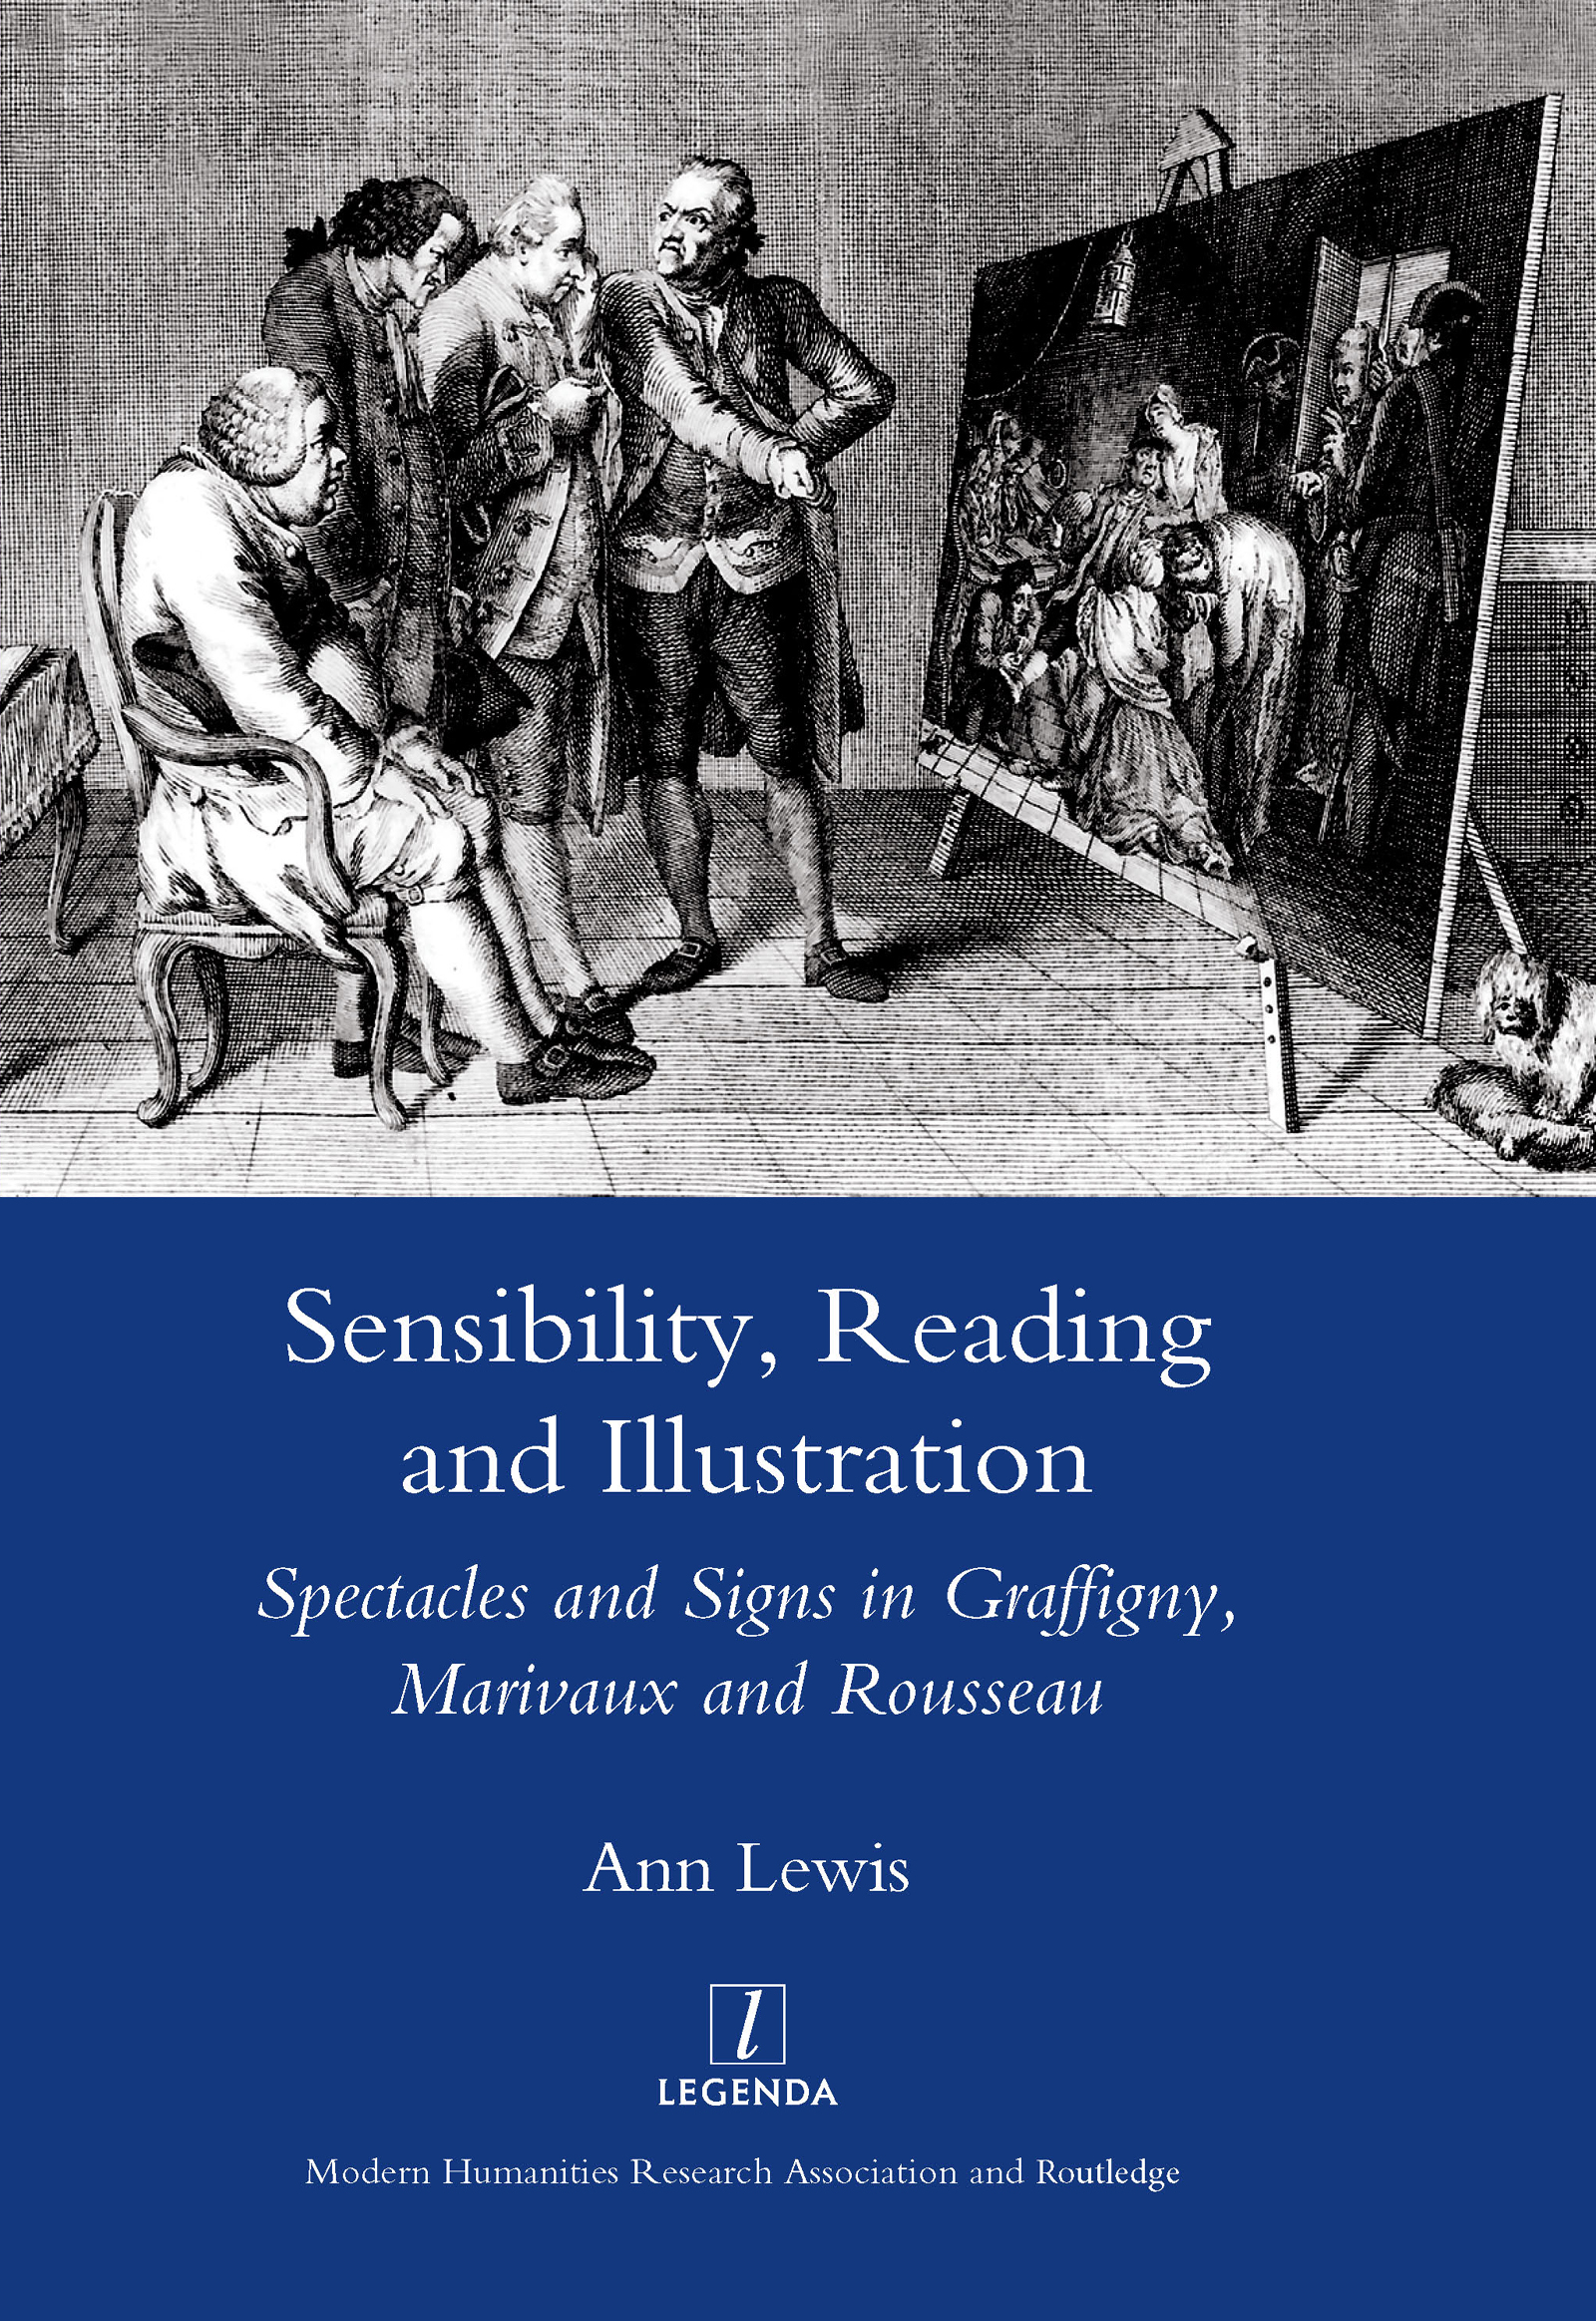 Sensibility, Reading and Illustration: Spectacles and Signs in Graffigny, Marivaux and Rousseau, 1st Edition (Hardback) book cover